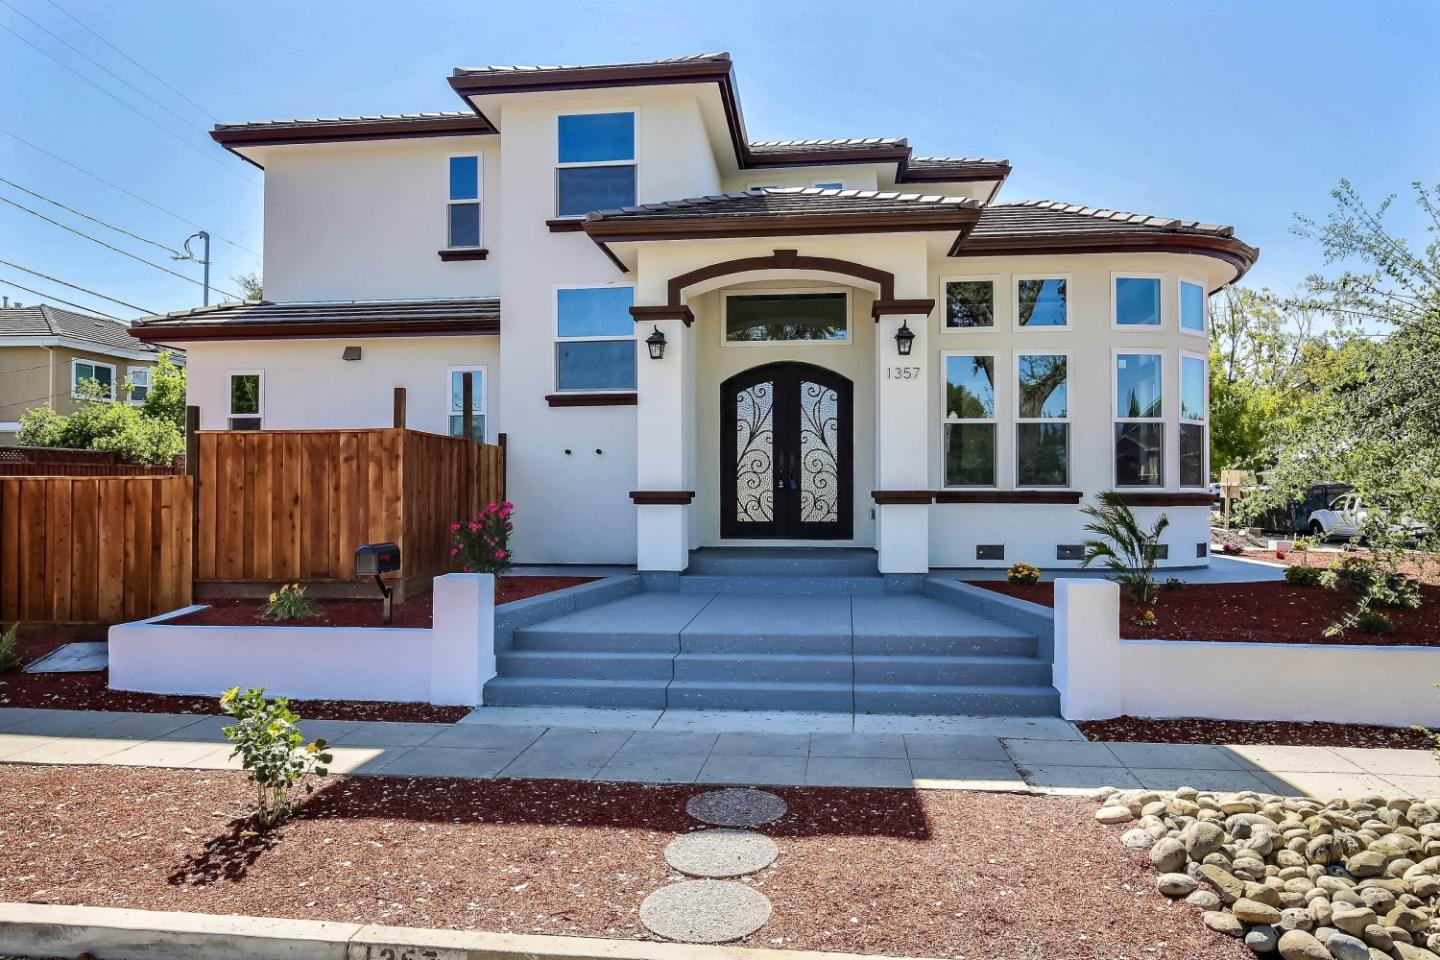 Additional photo for property listing at 1357 Tartarian Way  San Jose, California 95129 United States